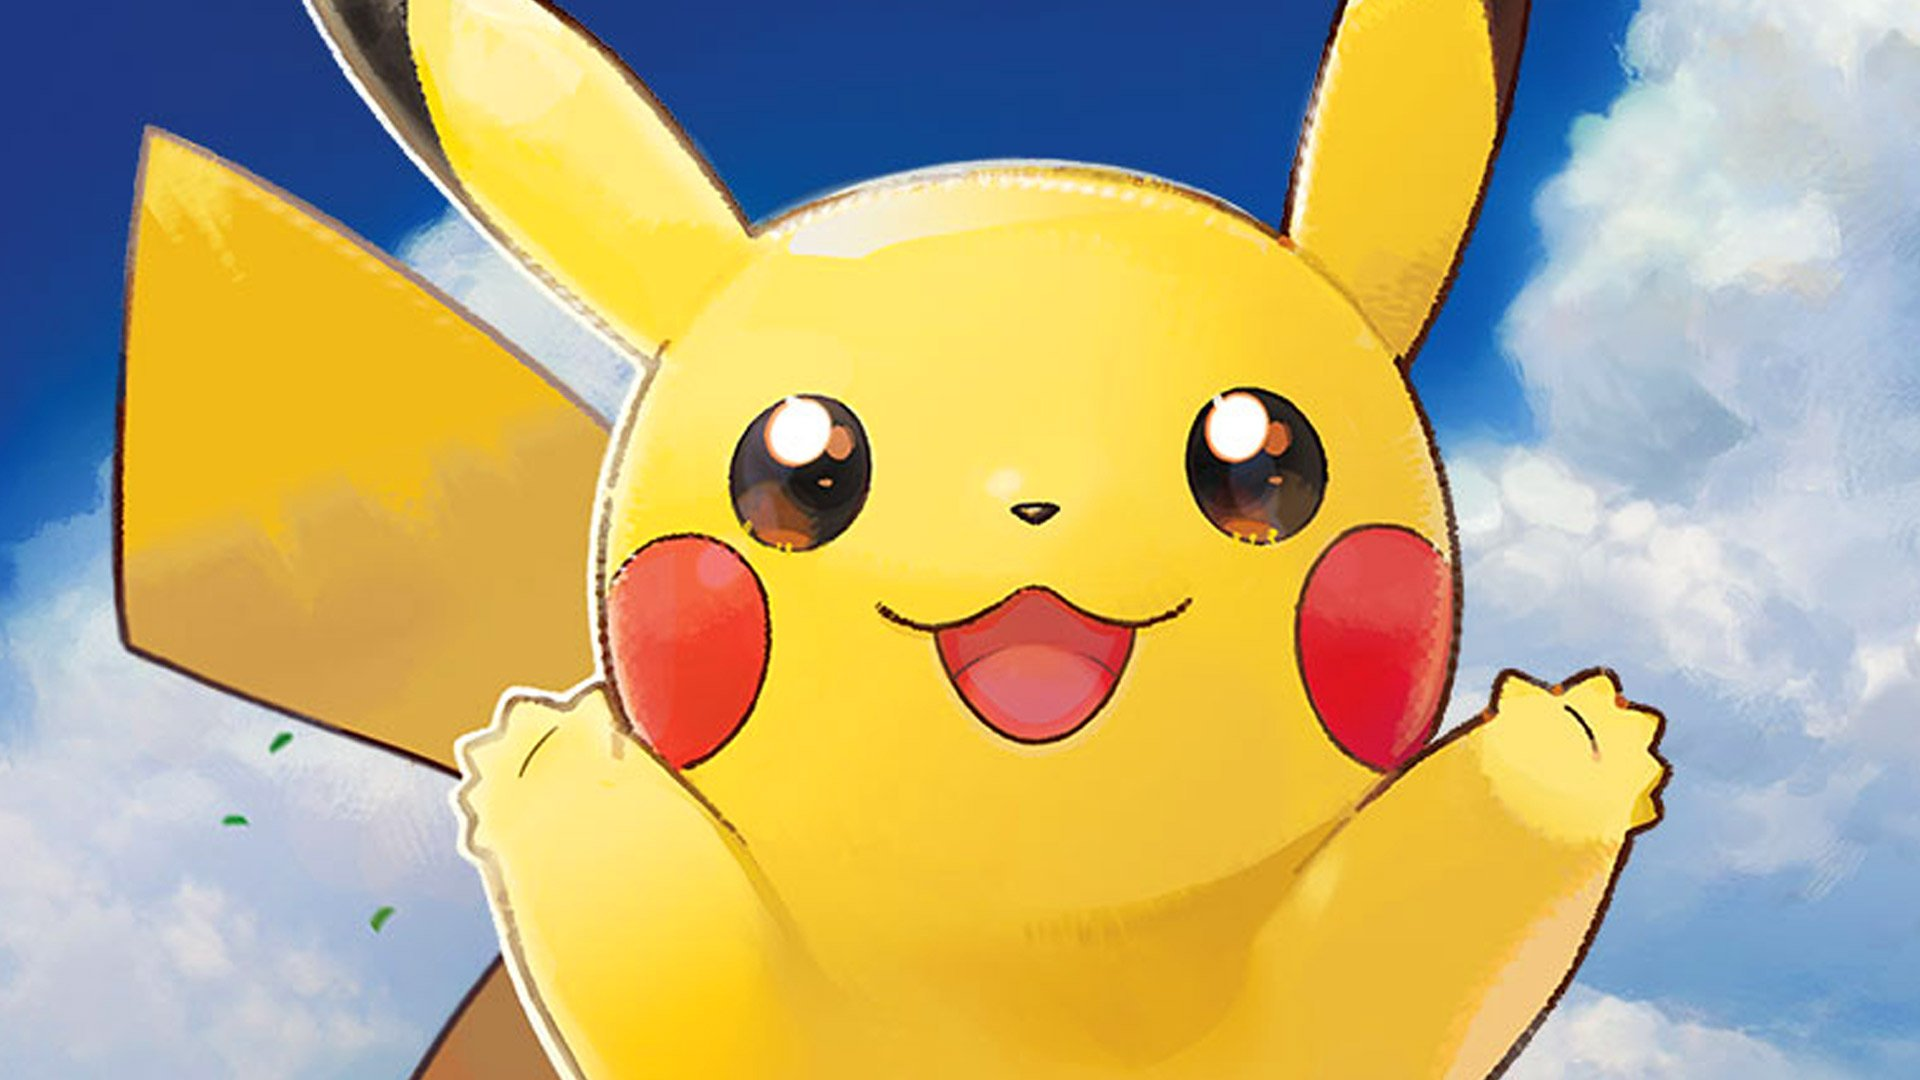 Judging by films like Detective Pikachu, fans may also see more mature themes in future Pokemon titles.